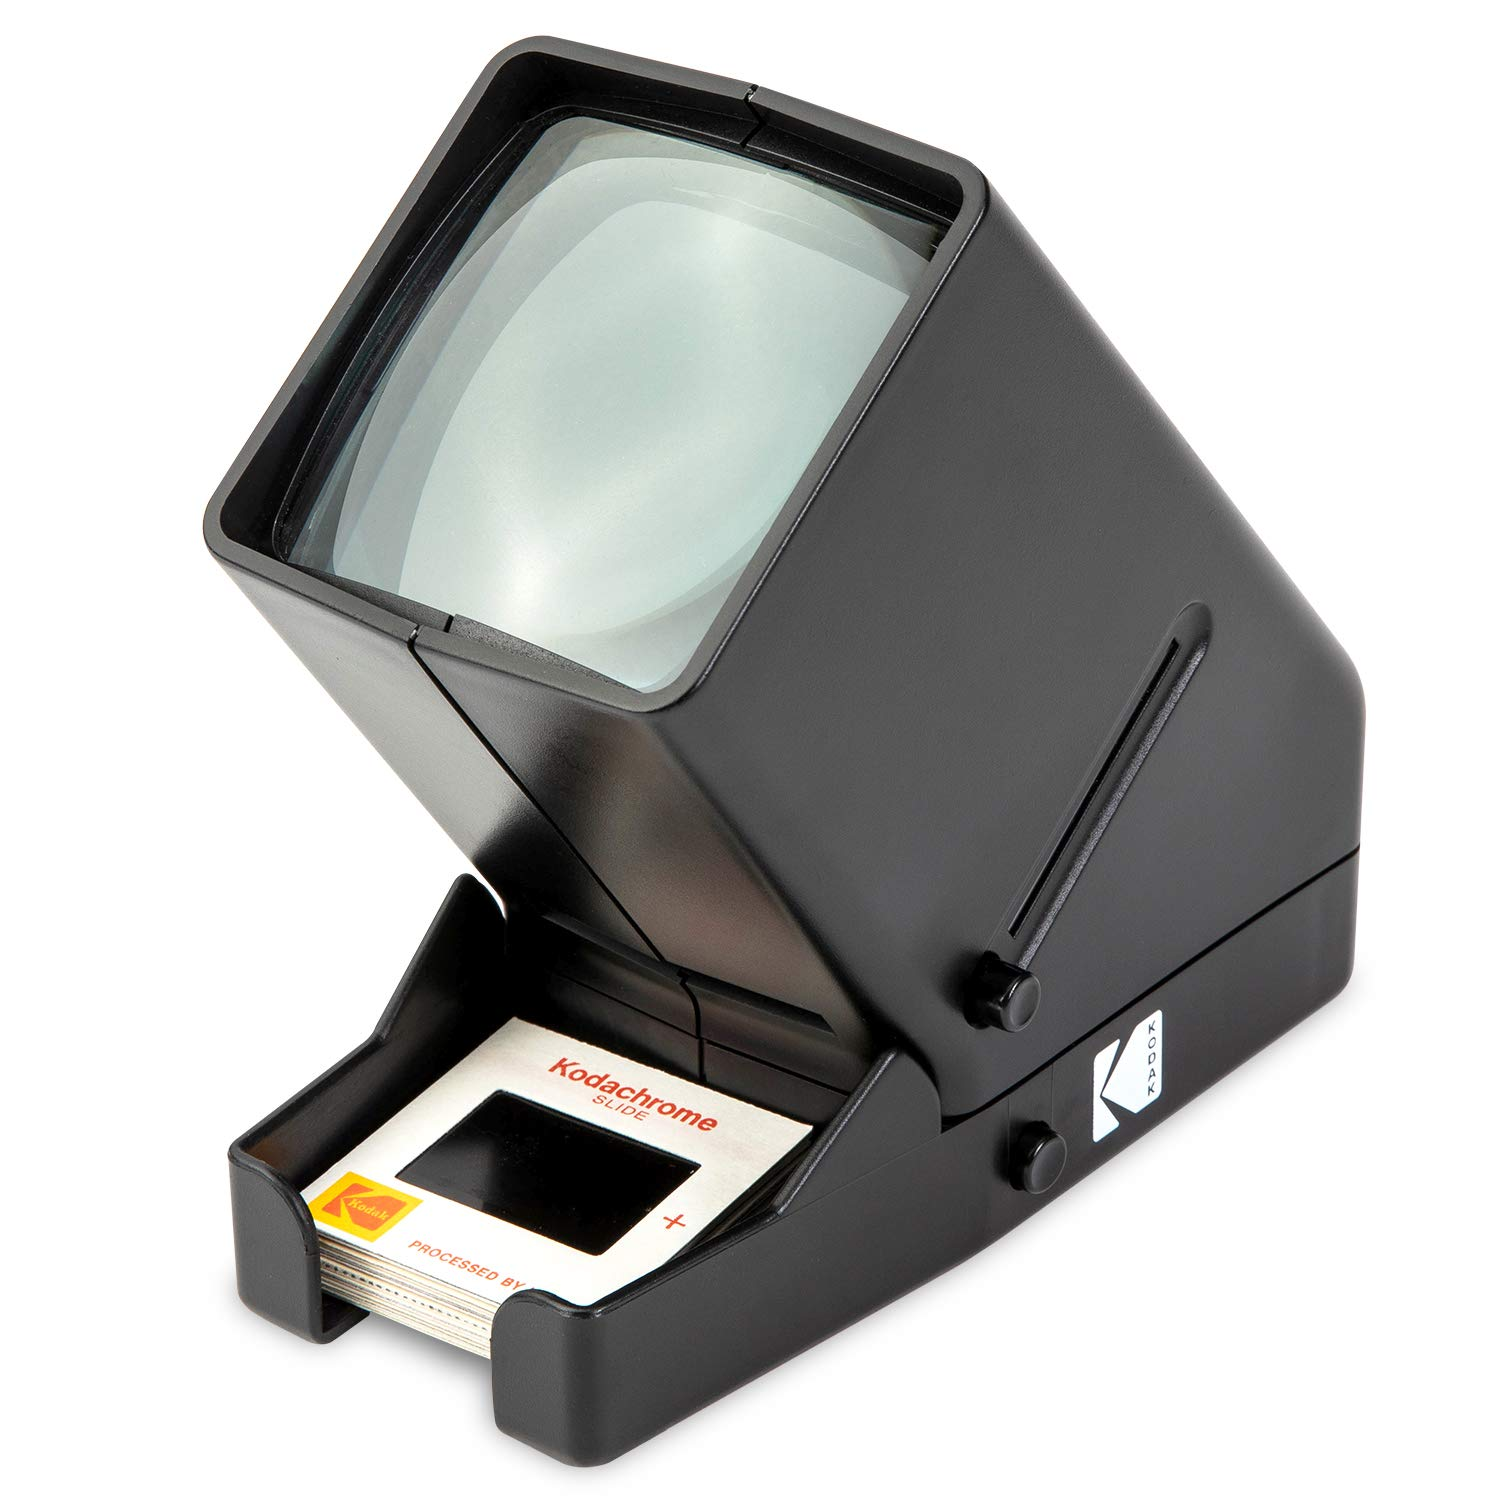 KODAK 35mm Slide and Film Viewer - Battery Operation, 3X Magnification, LED Lighted Viewing – for 35mm Slides & Film Negatives RODESV25